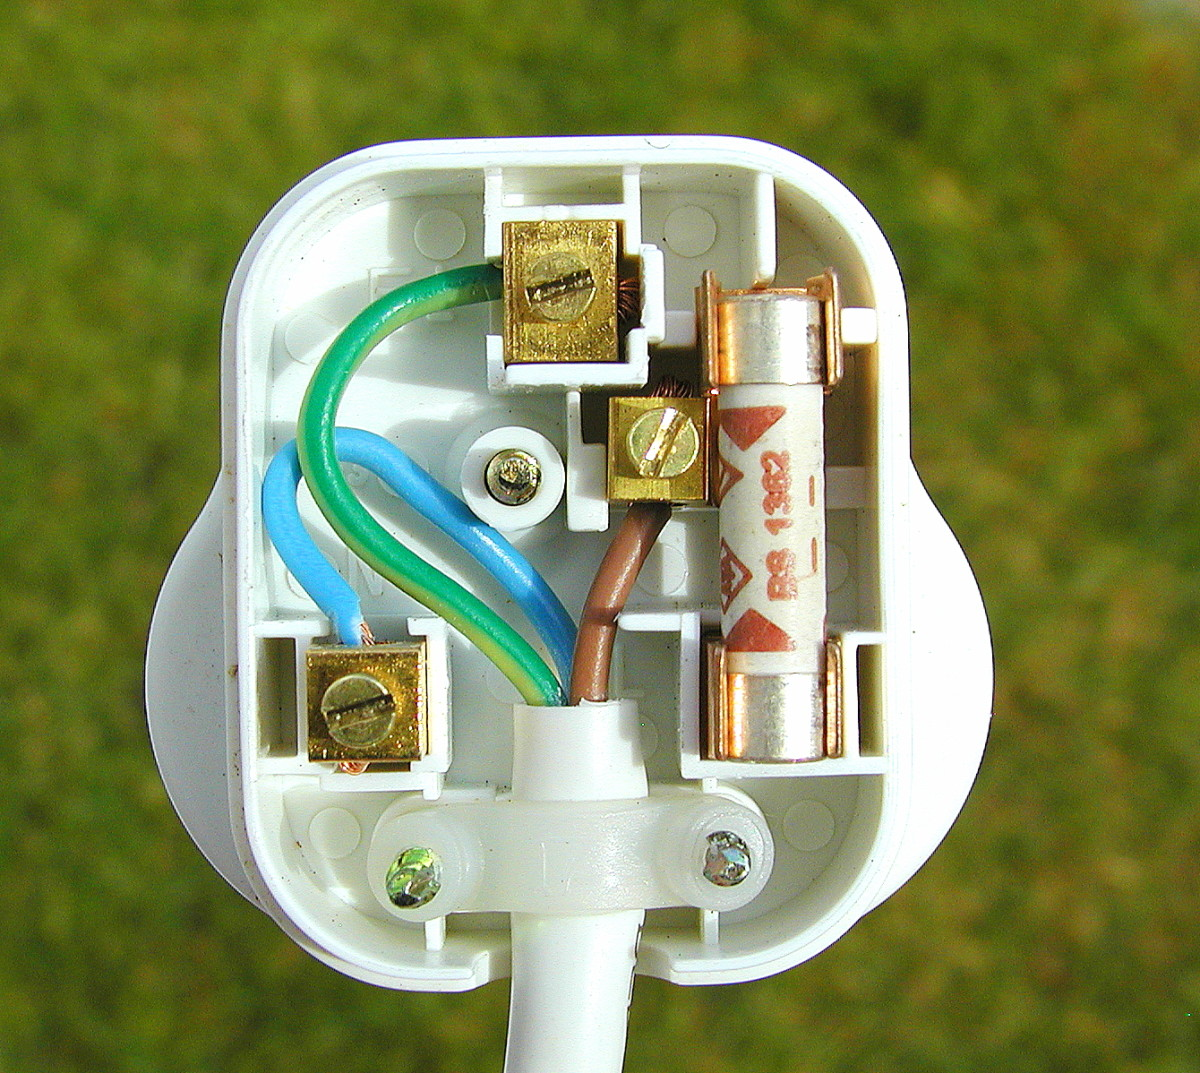 Astonishing 9 Easy Steps To Wiring A Plug Correctly And Safely Dengarden Wiring Database Pengheclesi4X4Andersnl